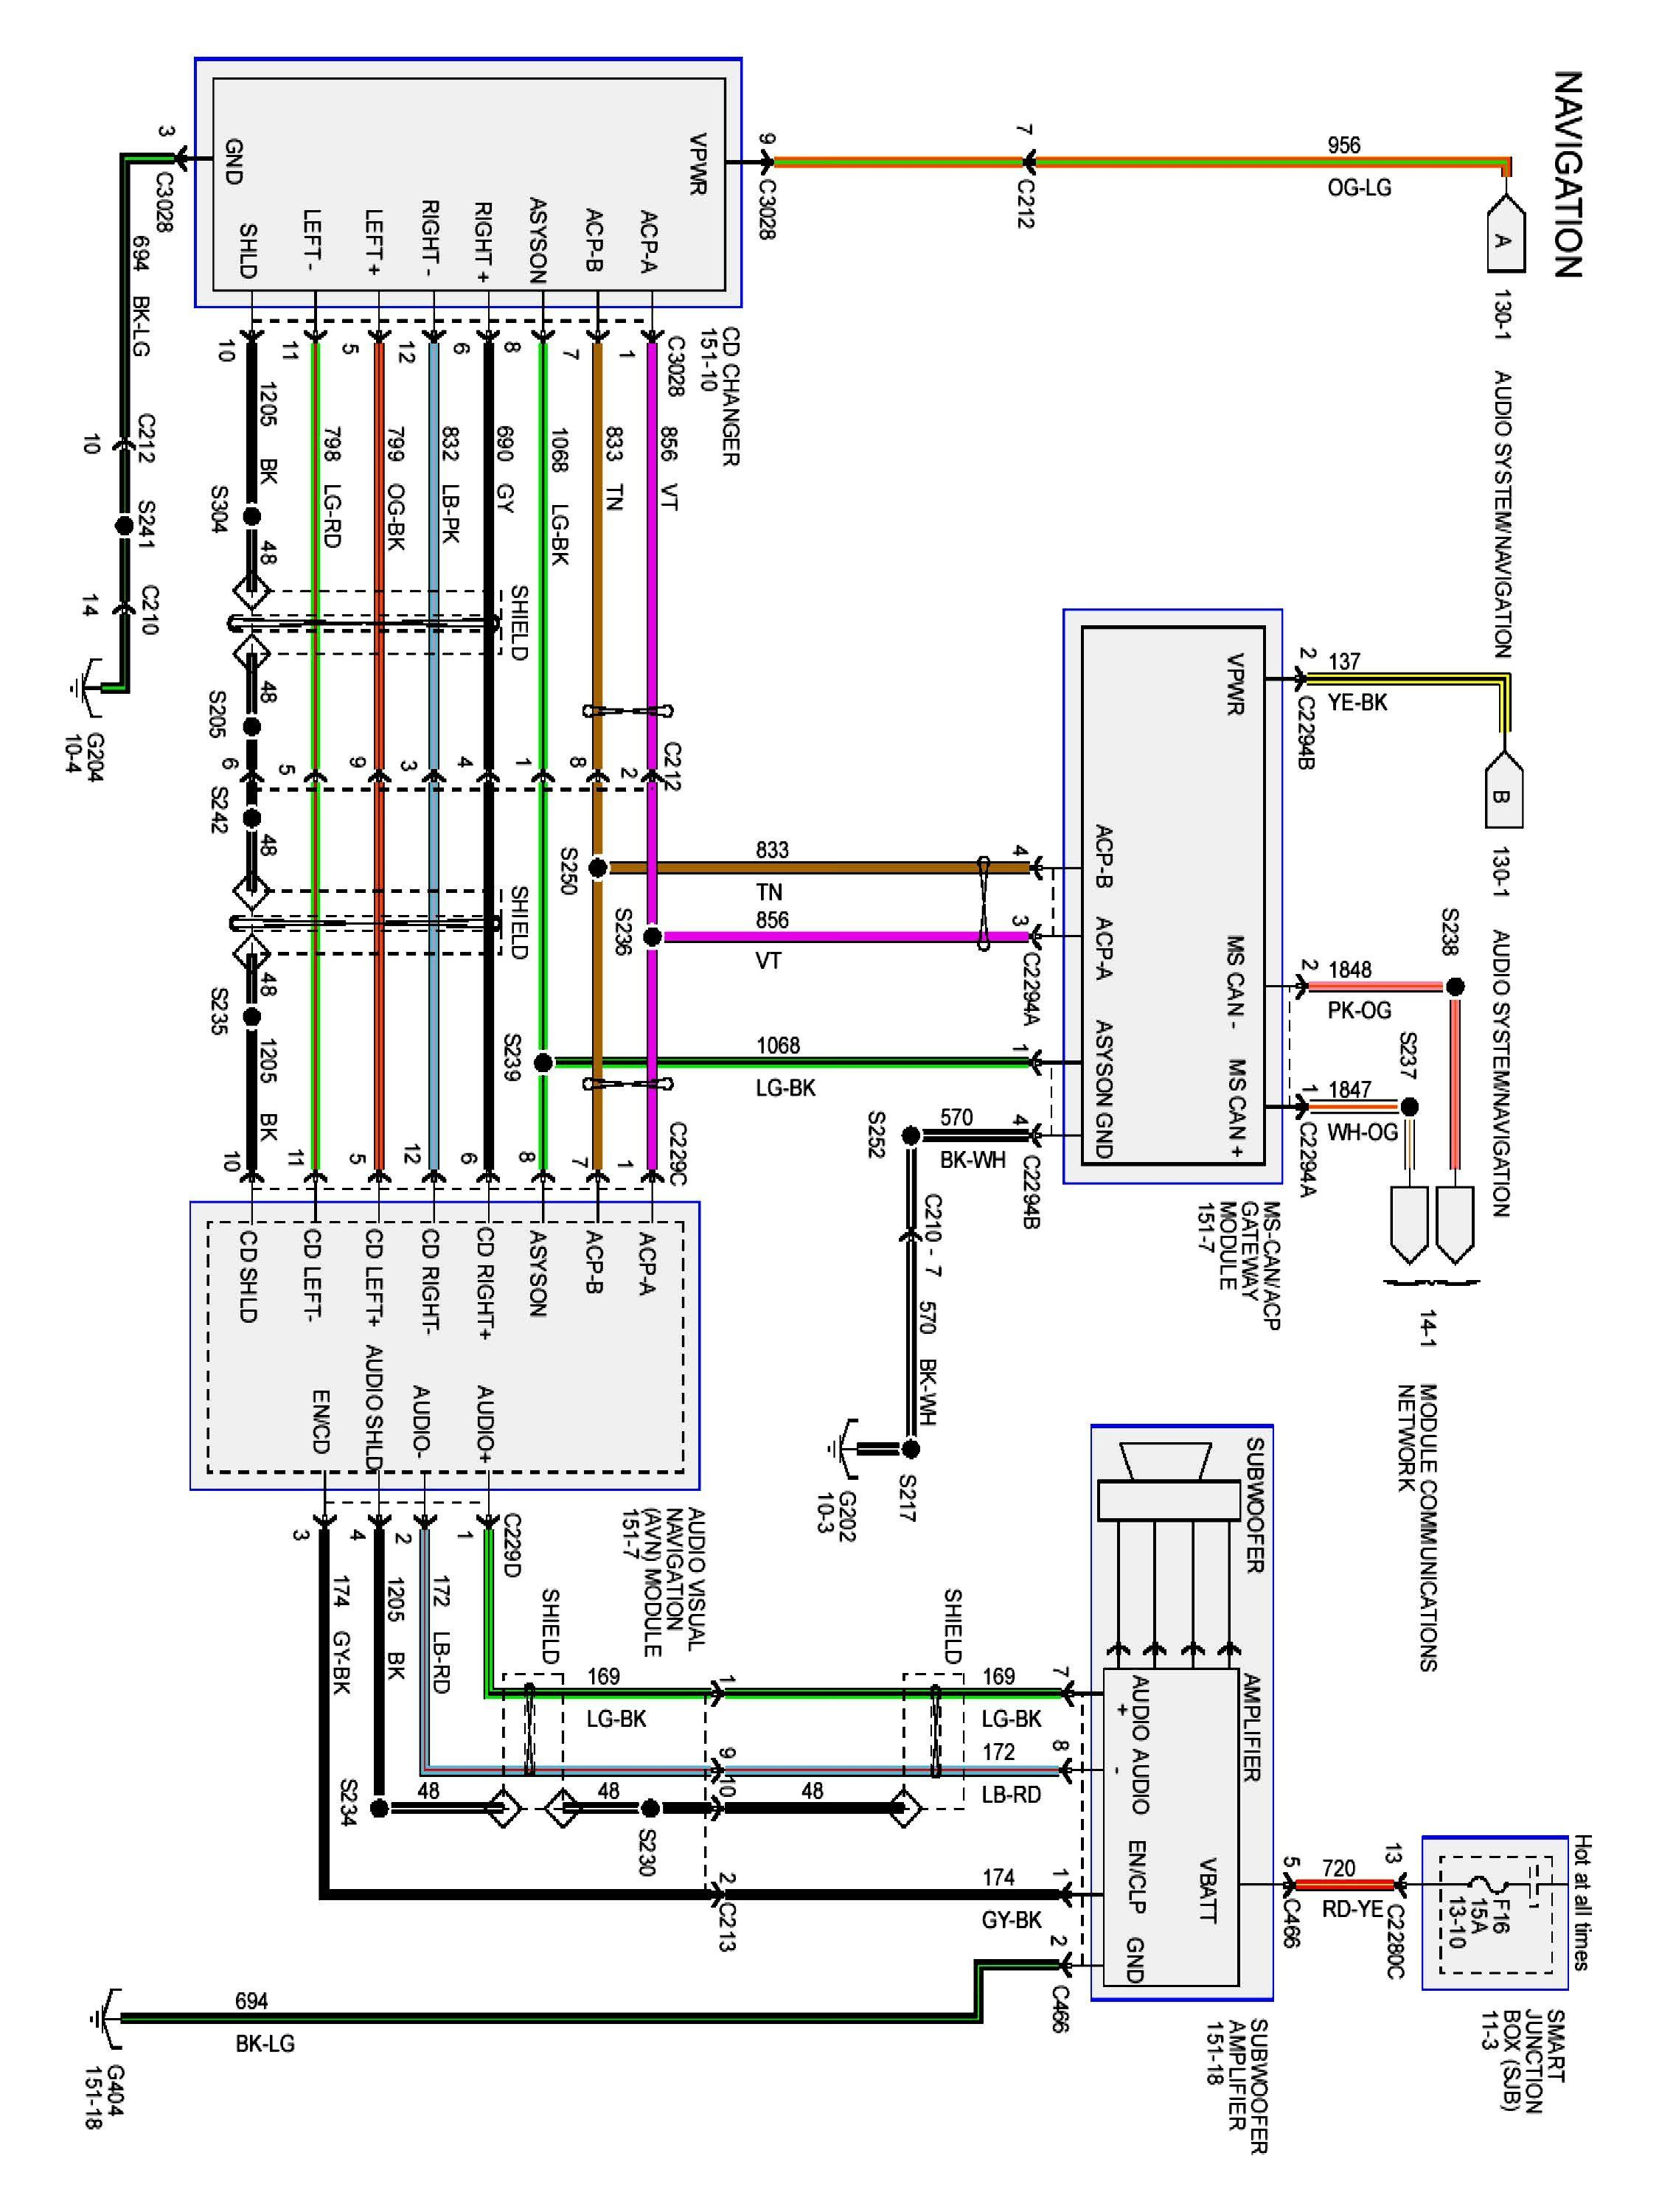 medium resolution of wiring diagram for 2007 camry jbl amp schematic diagram database 2007 camry radio wiring diagram 2007 camry wiring diagram